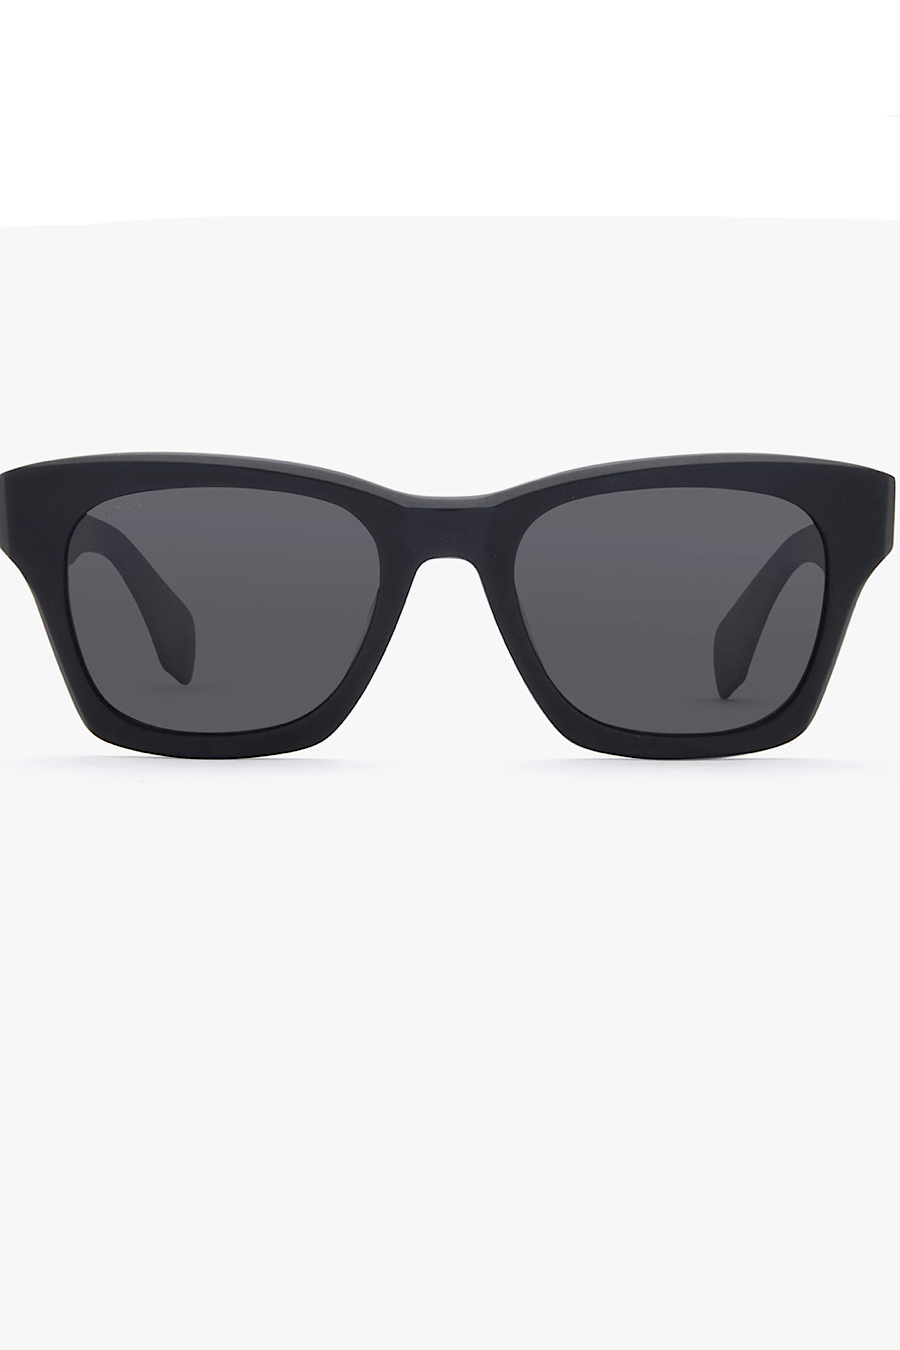 DIFF Eyewear Dean Sunglasses in Black/Grey